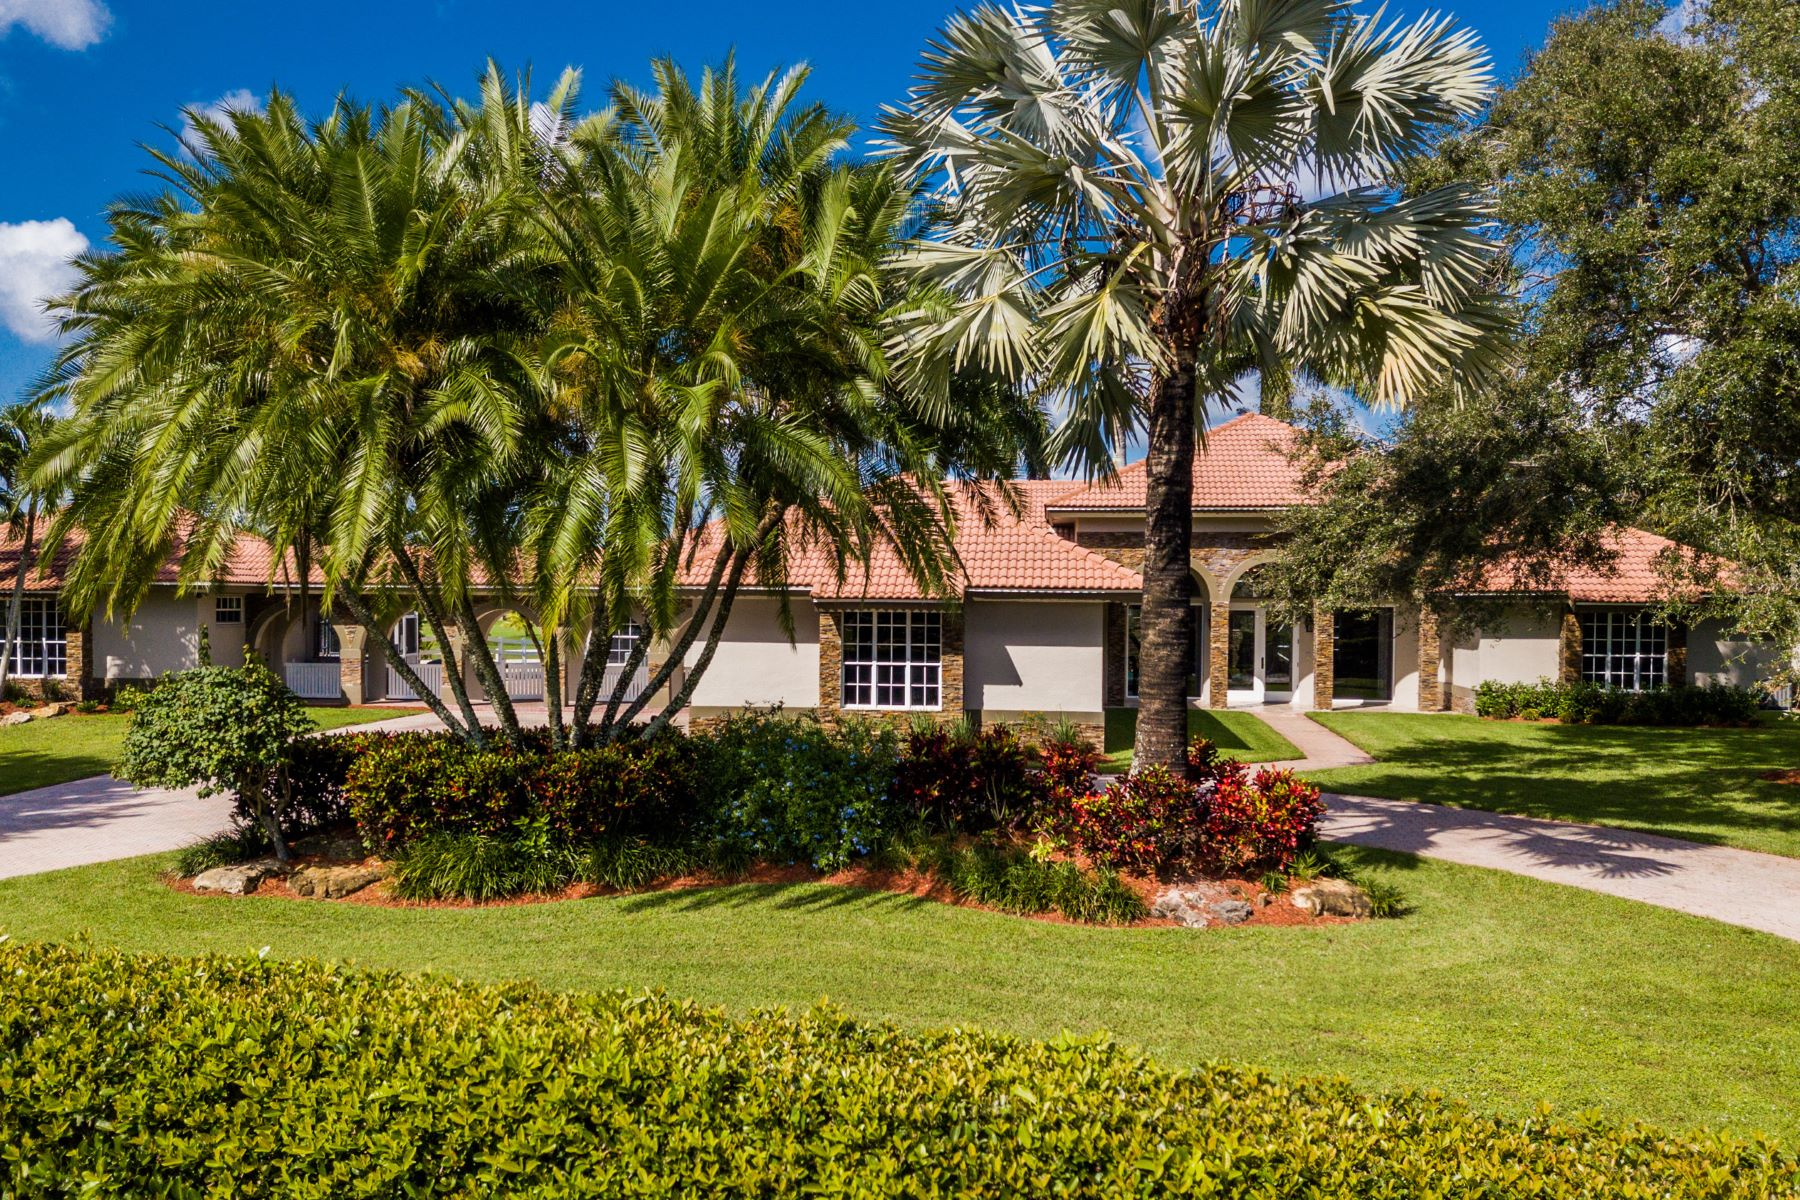 Single Family Homes for Sale at 10323 El Caballo Court Delray Beach, Florida 33446 United States